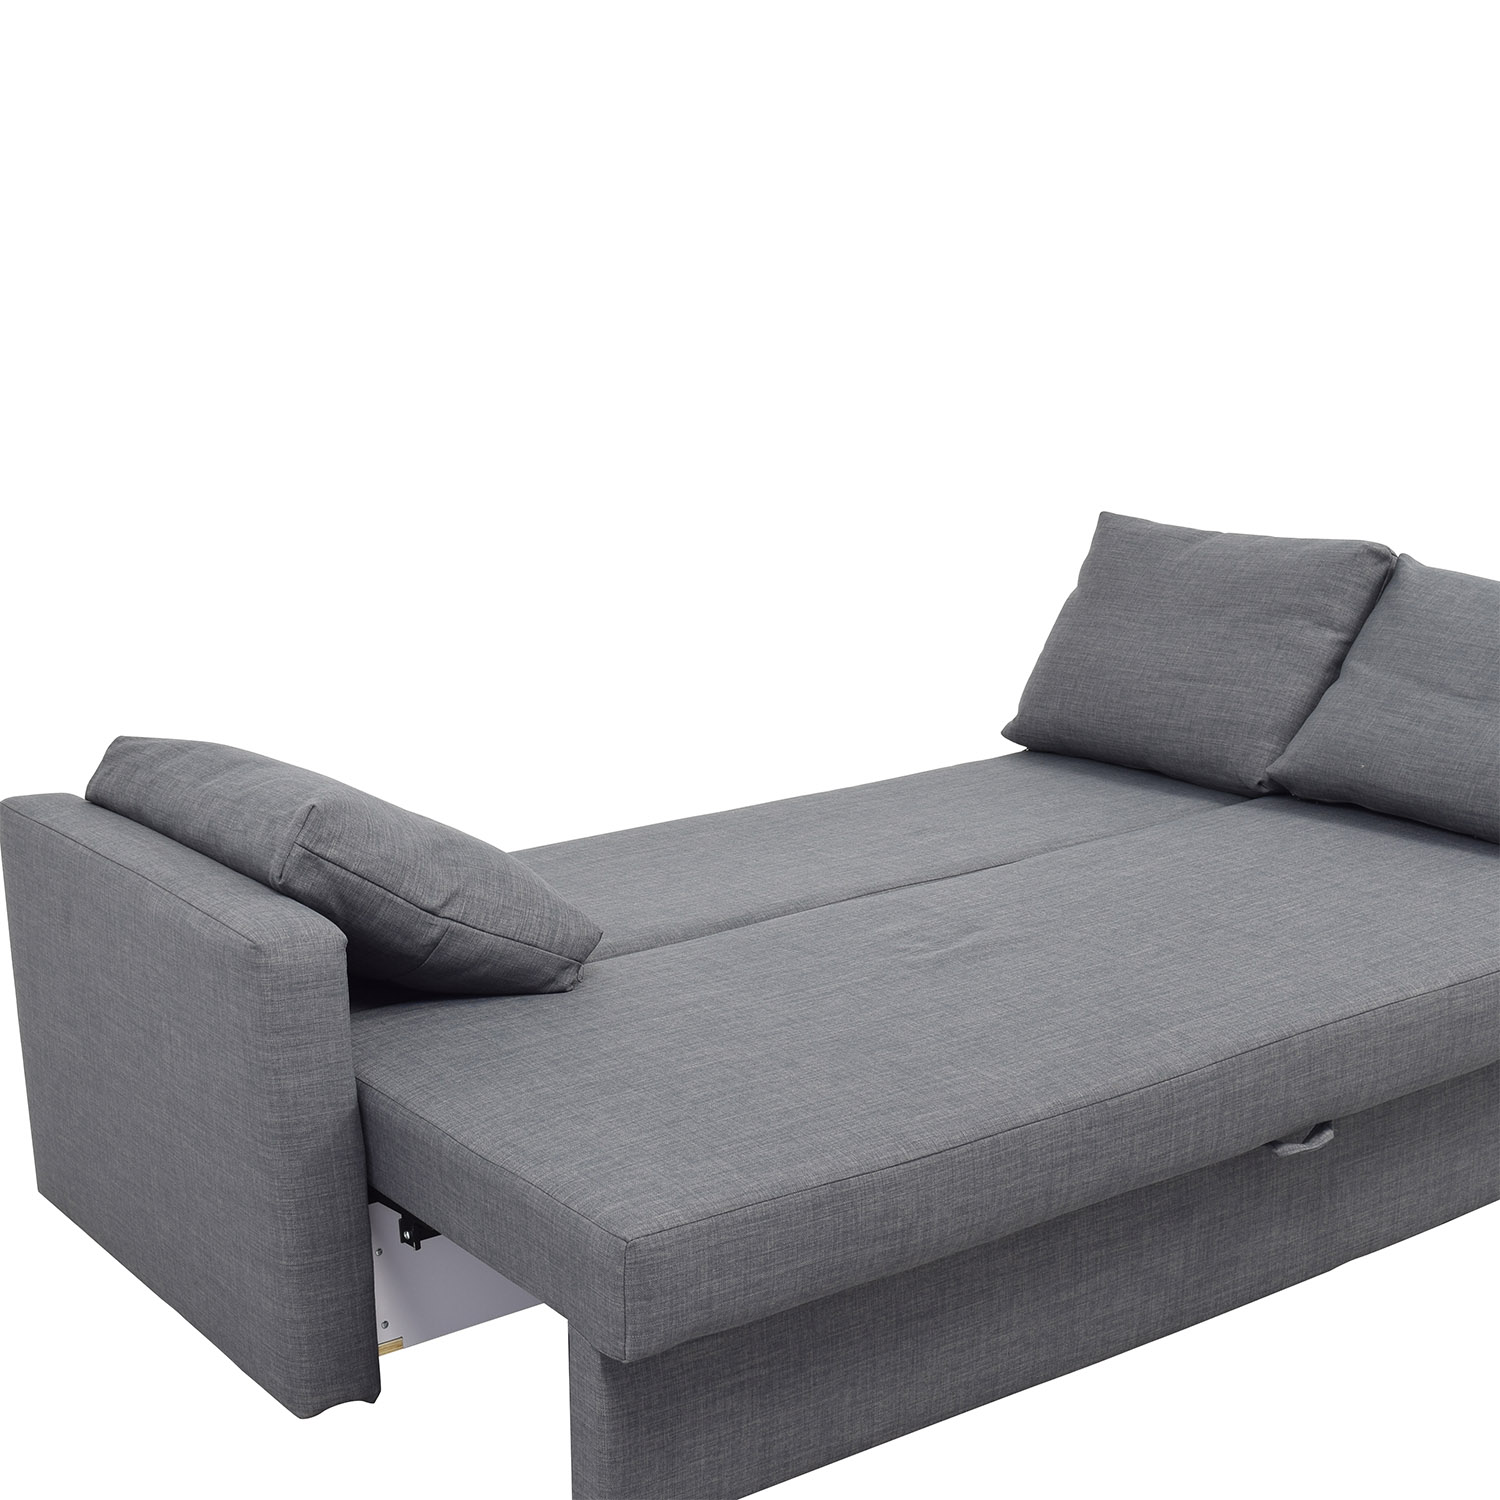 Ikea Friheten Grey Sleeper Sofa For